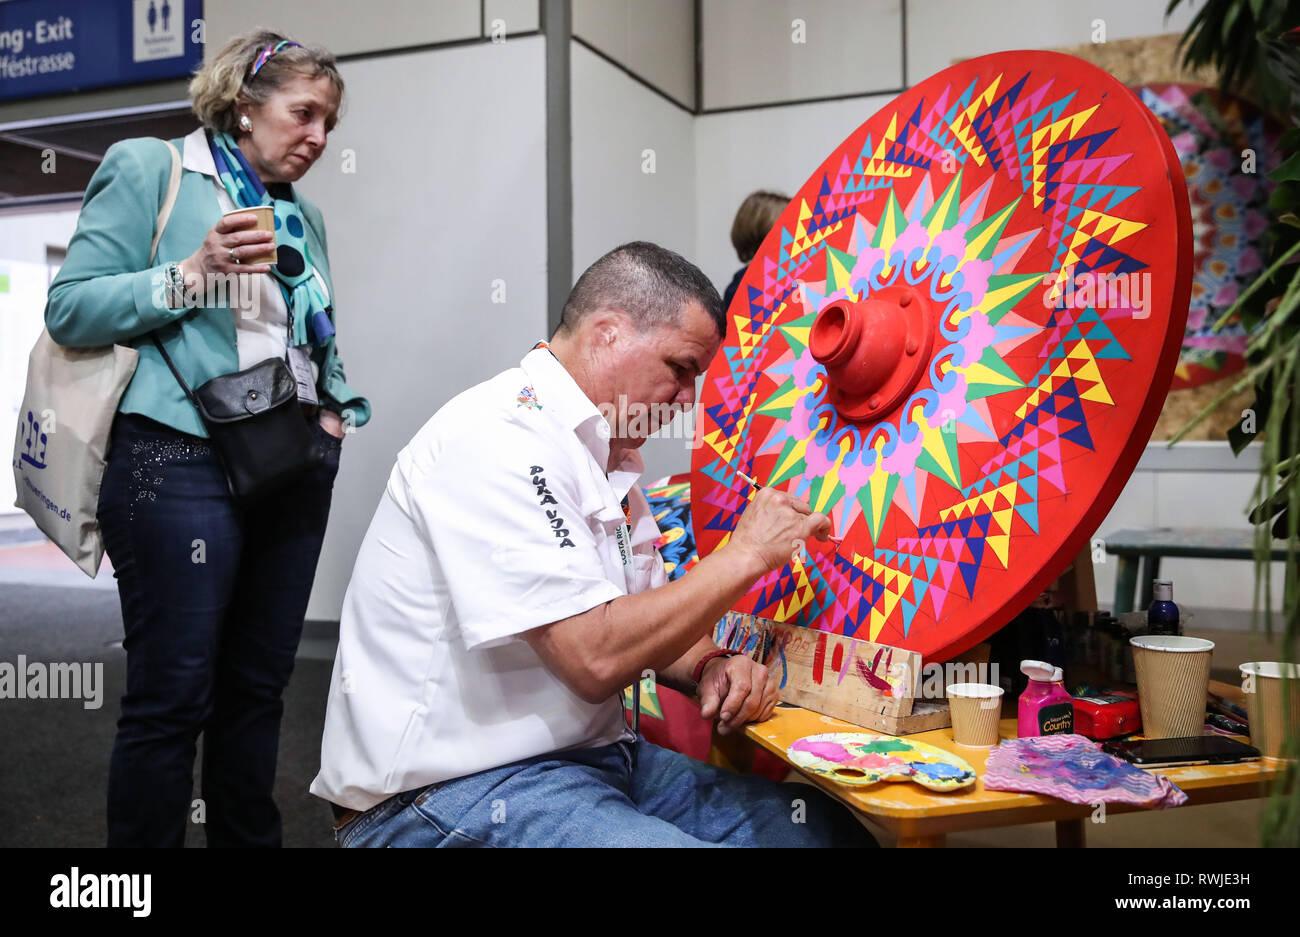 Berlin, Germany  6th Mar, 2019  A staff member paints an artware at